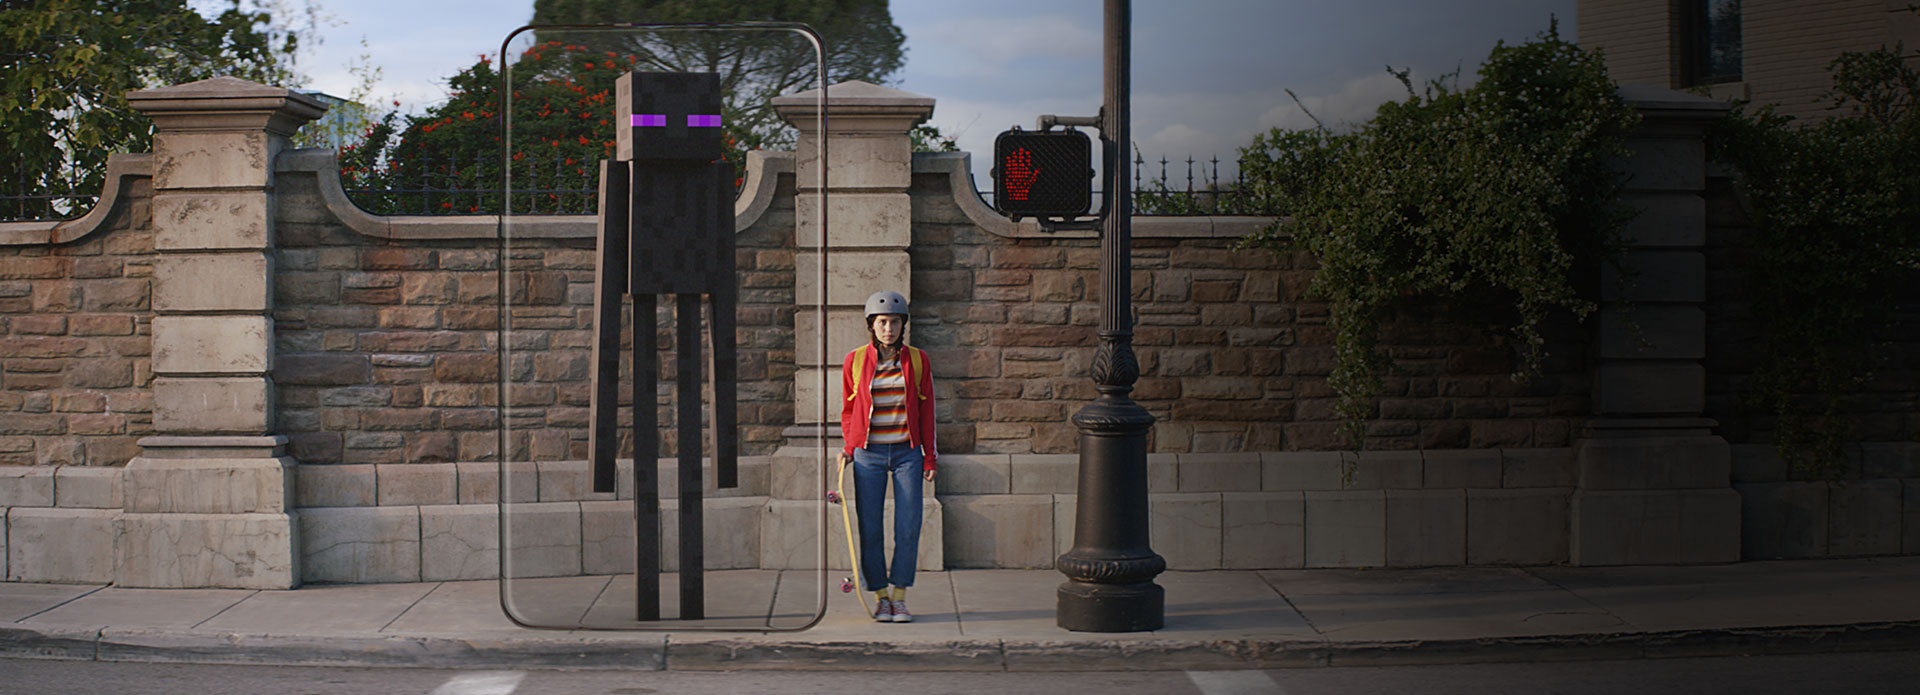 Skateboarder standing at a crosswalk next to Minecraft character